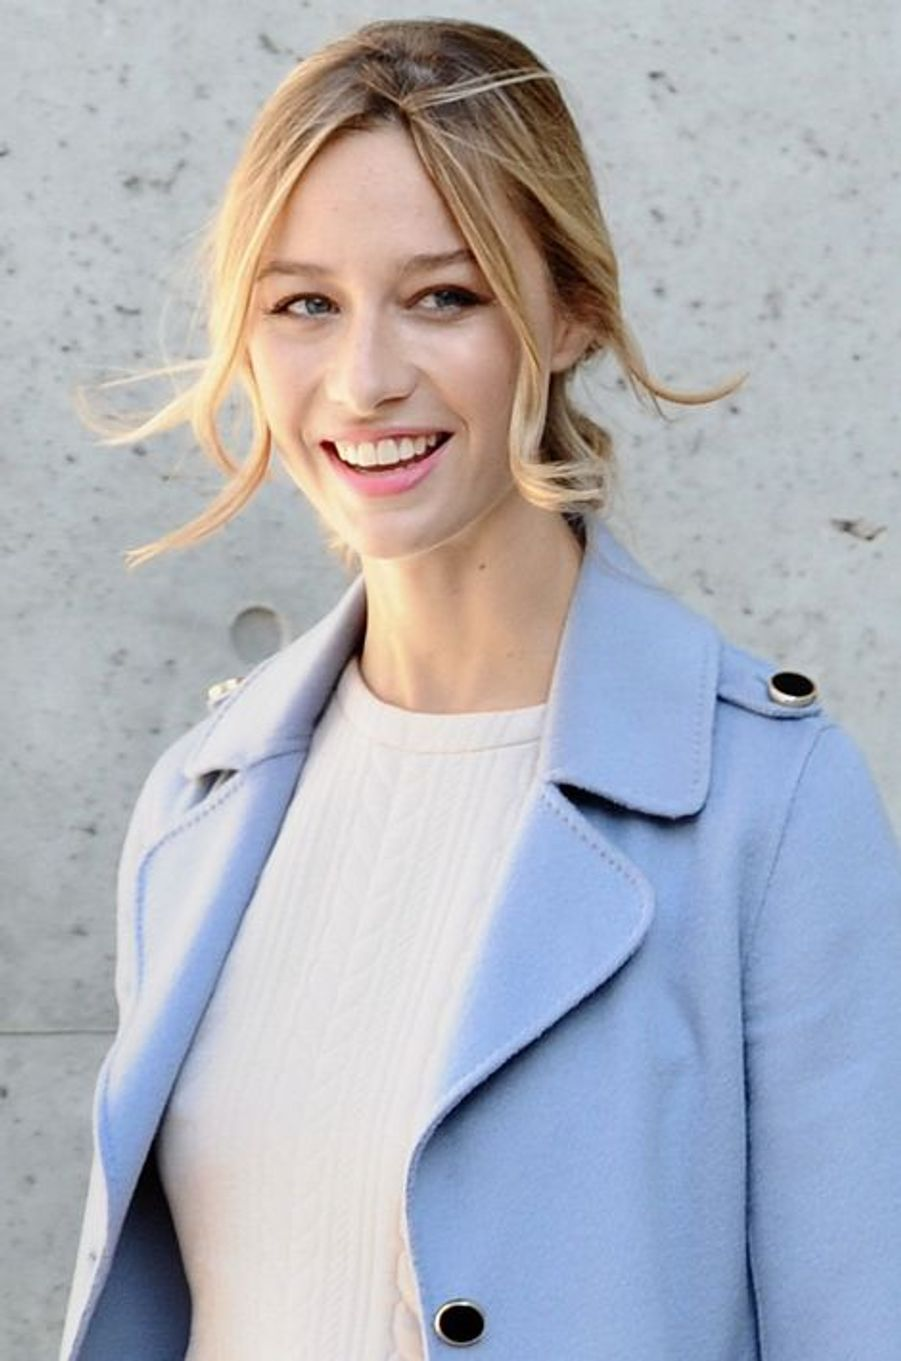 Beatrice Borromeo-Casiraghi à la Fashion Week de Milan, le 25 septembre 2015